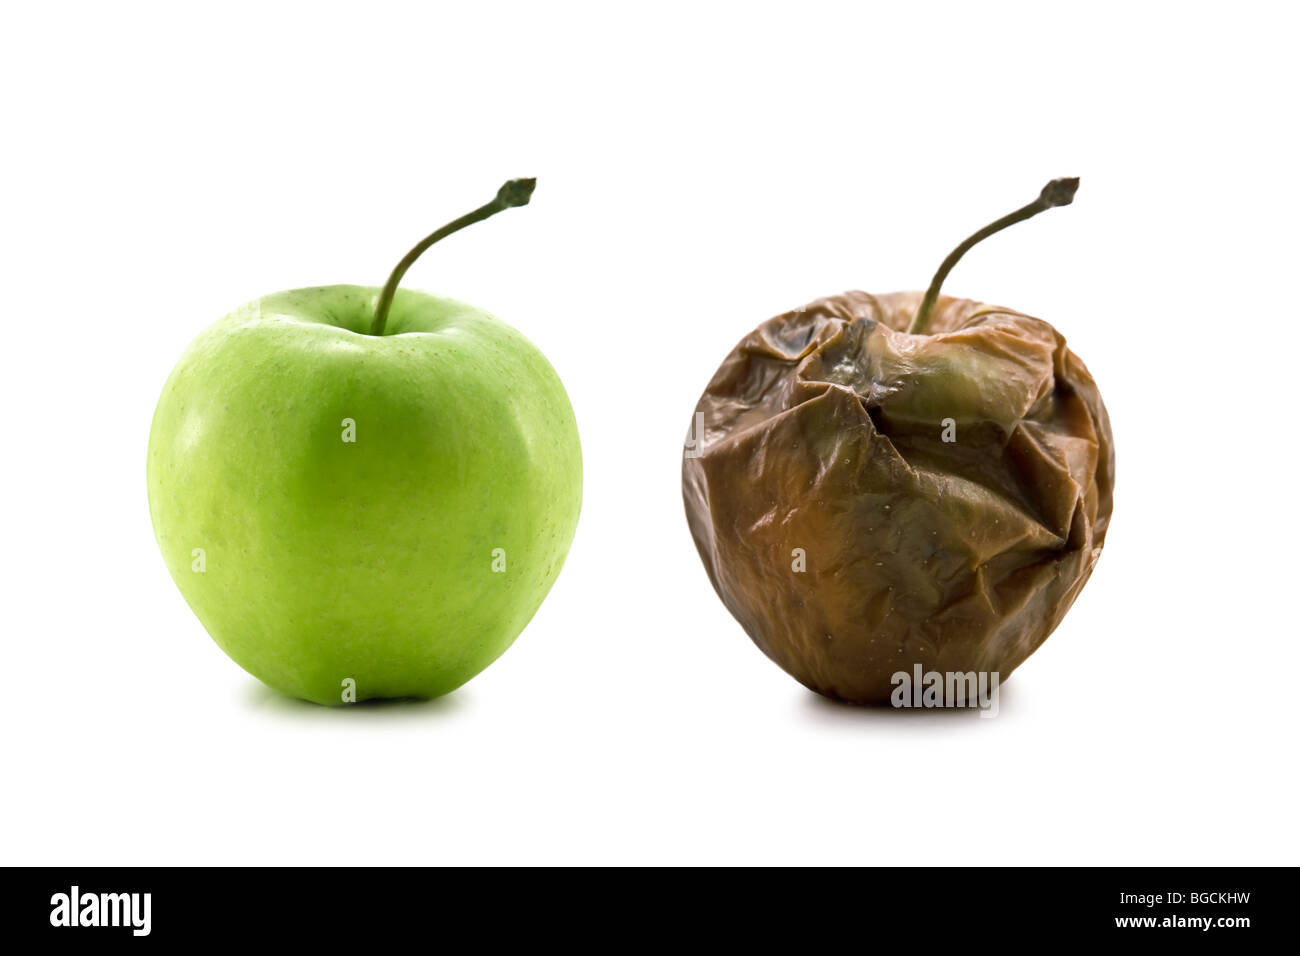 metamorphose of two apple - Stock Image